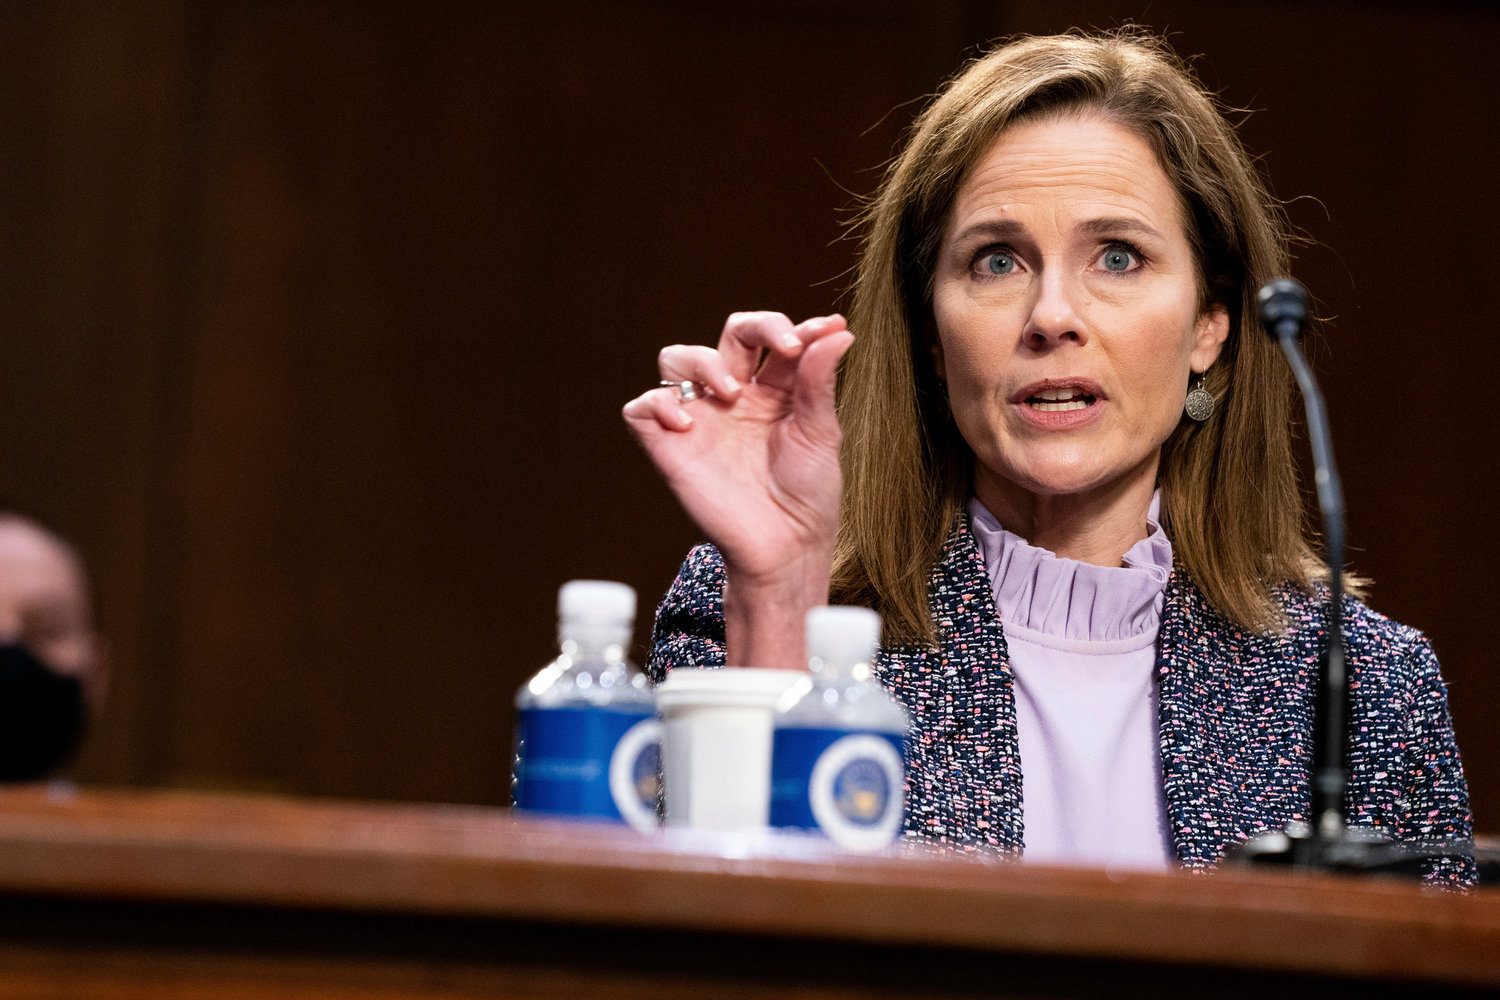 NYTACB Judge Amy Coney Barrett, President Donald Trump's Nominee for Supreme Court, speaks during the third day of her confirmation hearing with the Senate Judiciary Committee in Hart Senate Office Building in Washington DC, on October 14th, 2020. .